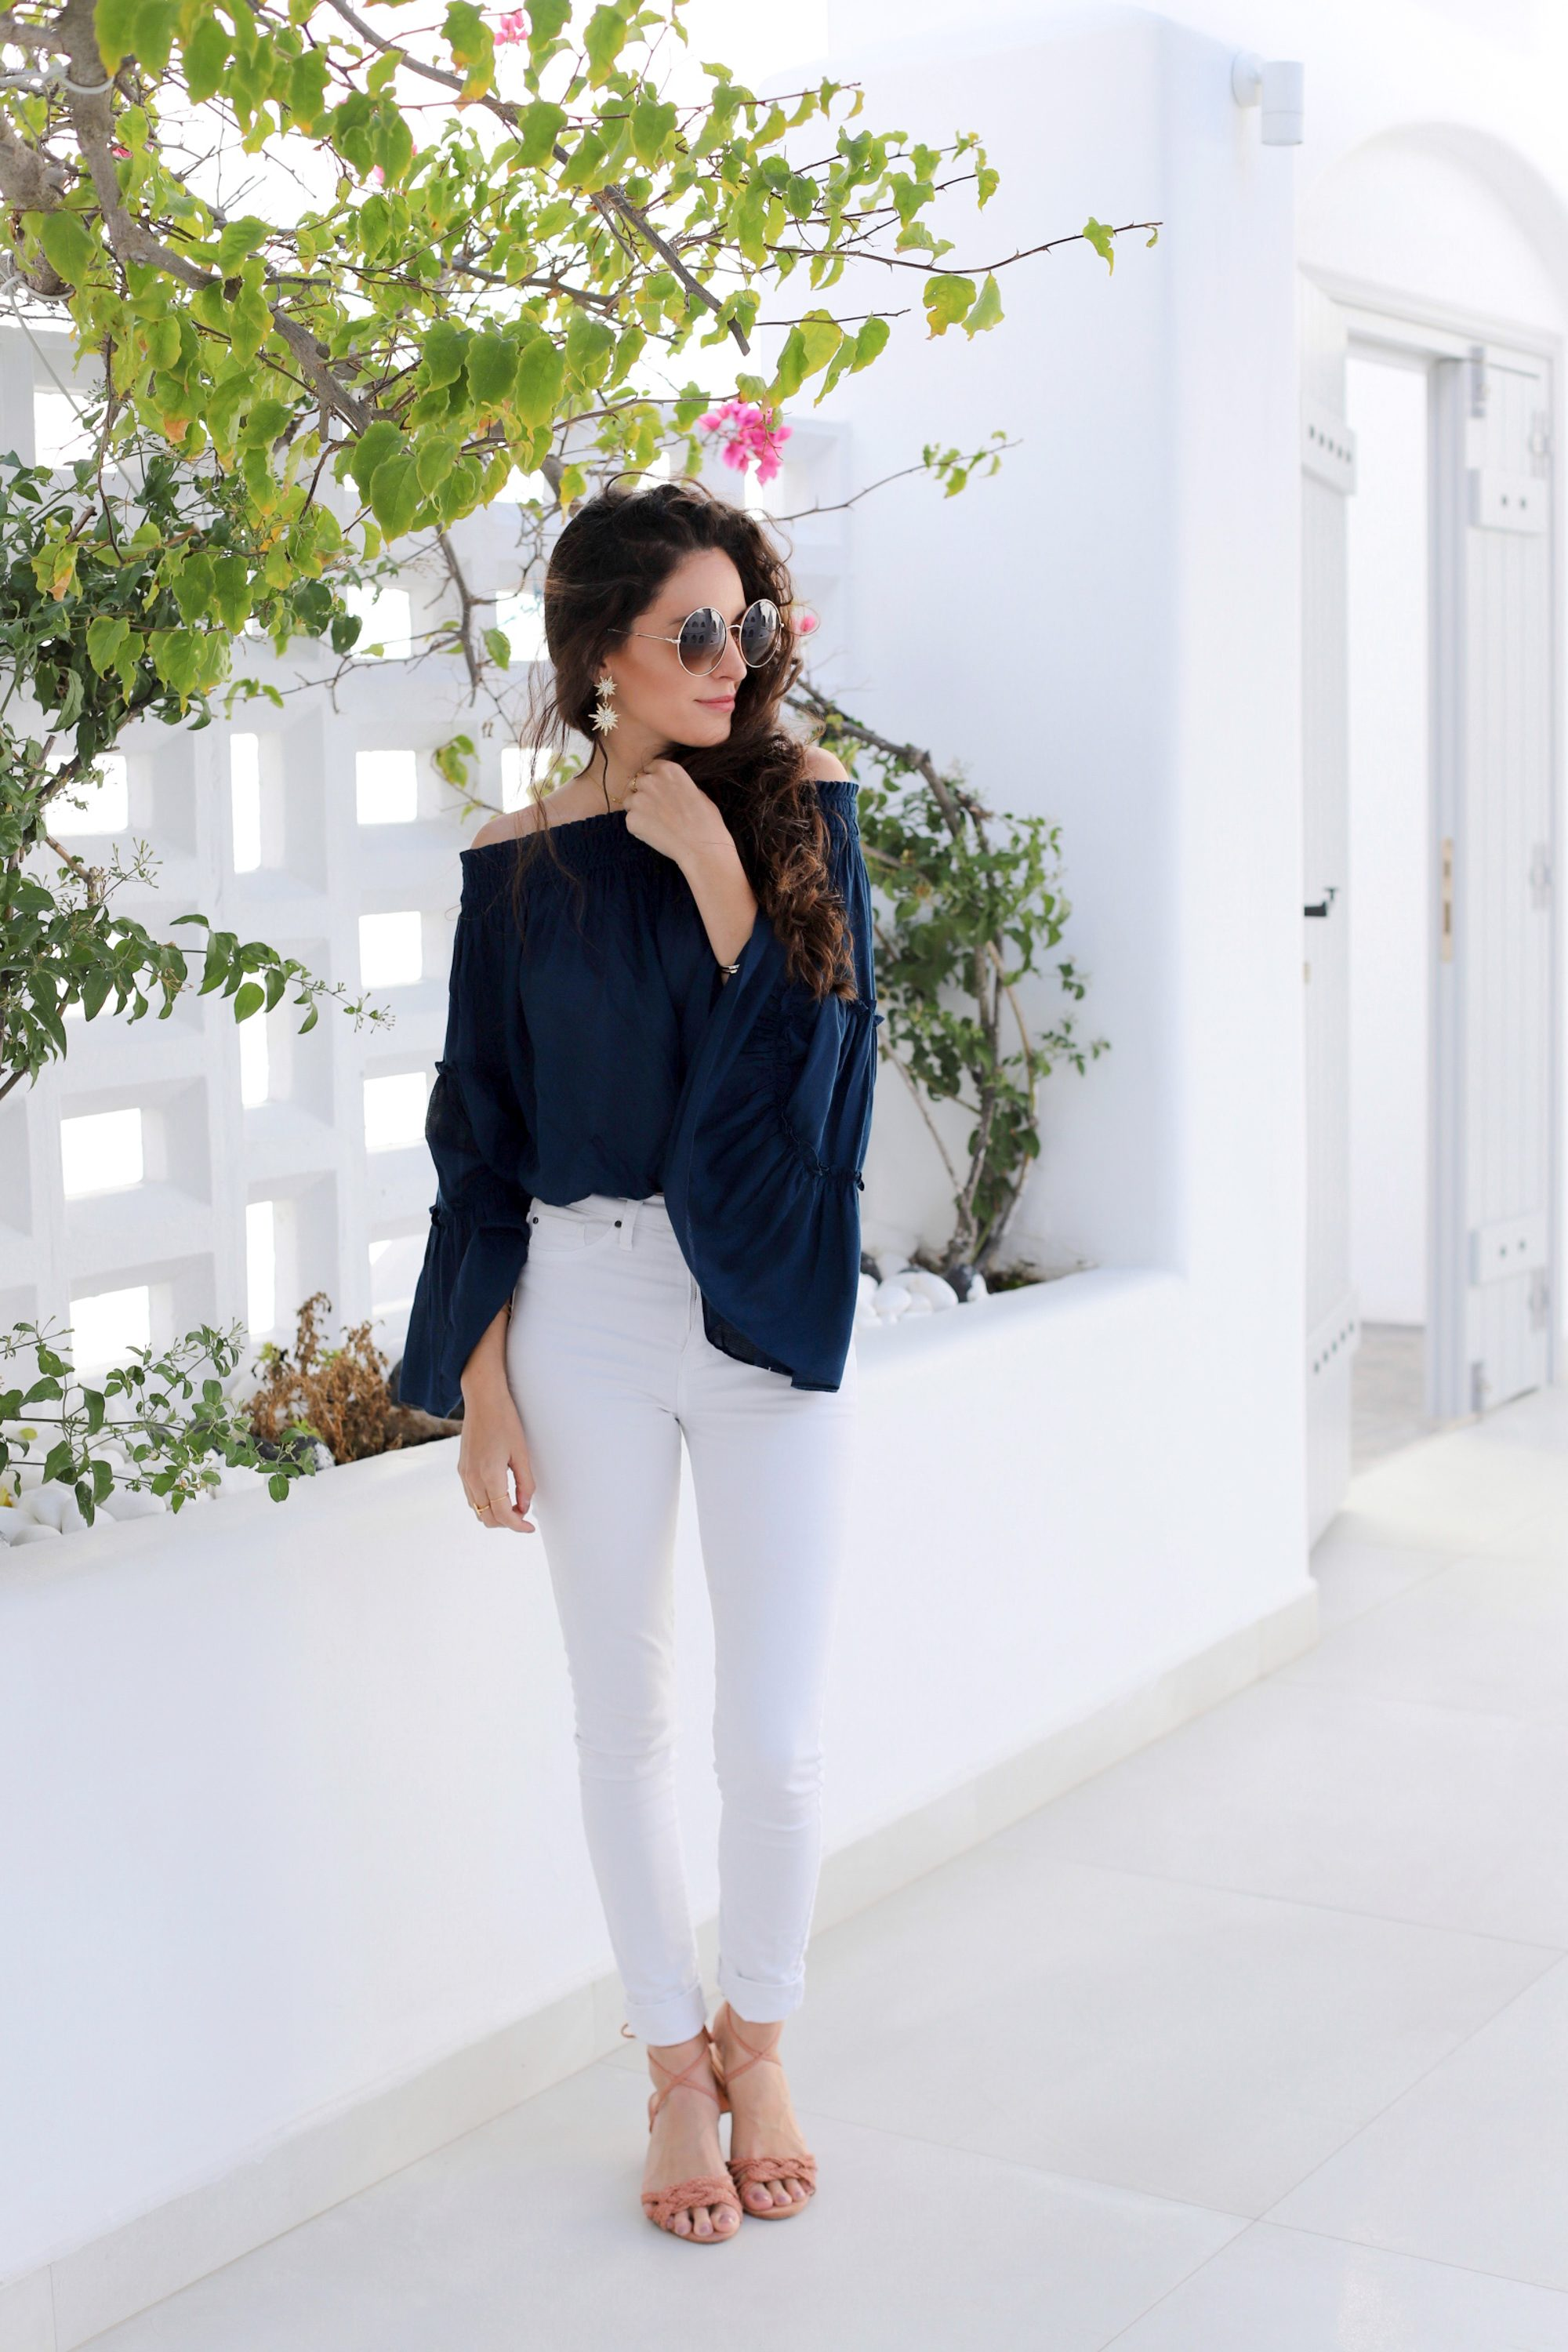 what to wear in santorini, schutz MARLIE SANDAL TOASTED, FREE PEOPLE FREE SPIRIT RUFFLE TIER OFF THE SHOULDER BLOUSE in turquoise, bell sleeves, off the shoulder top, blue and white, summer to fall outfit ideas